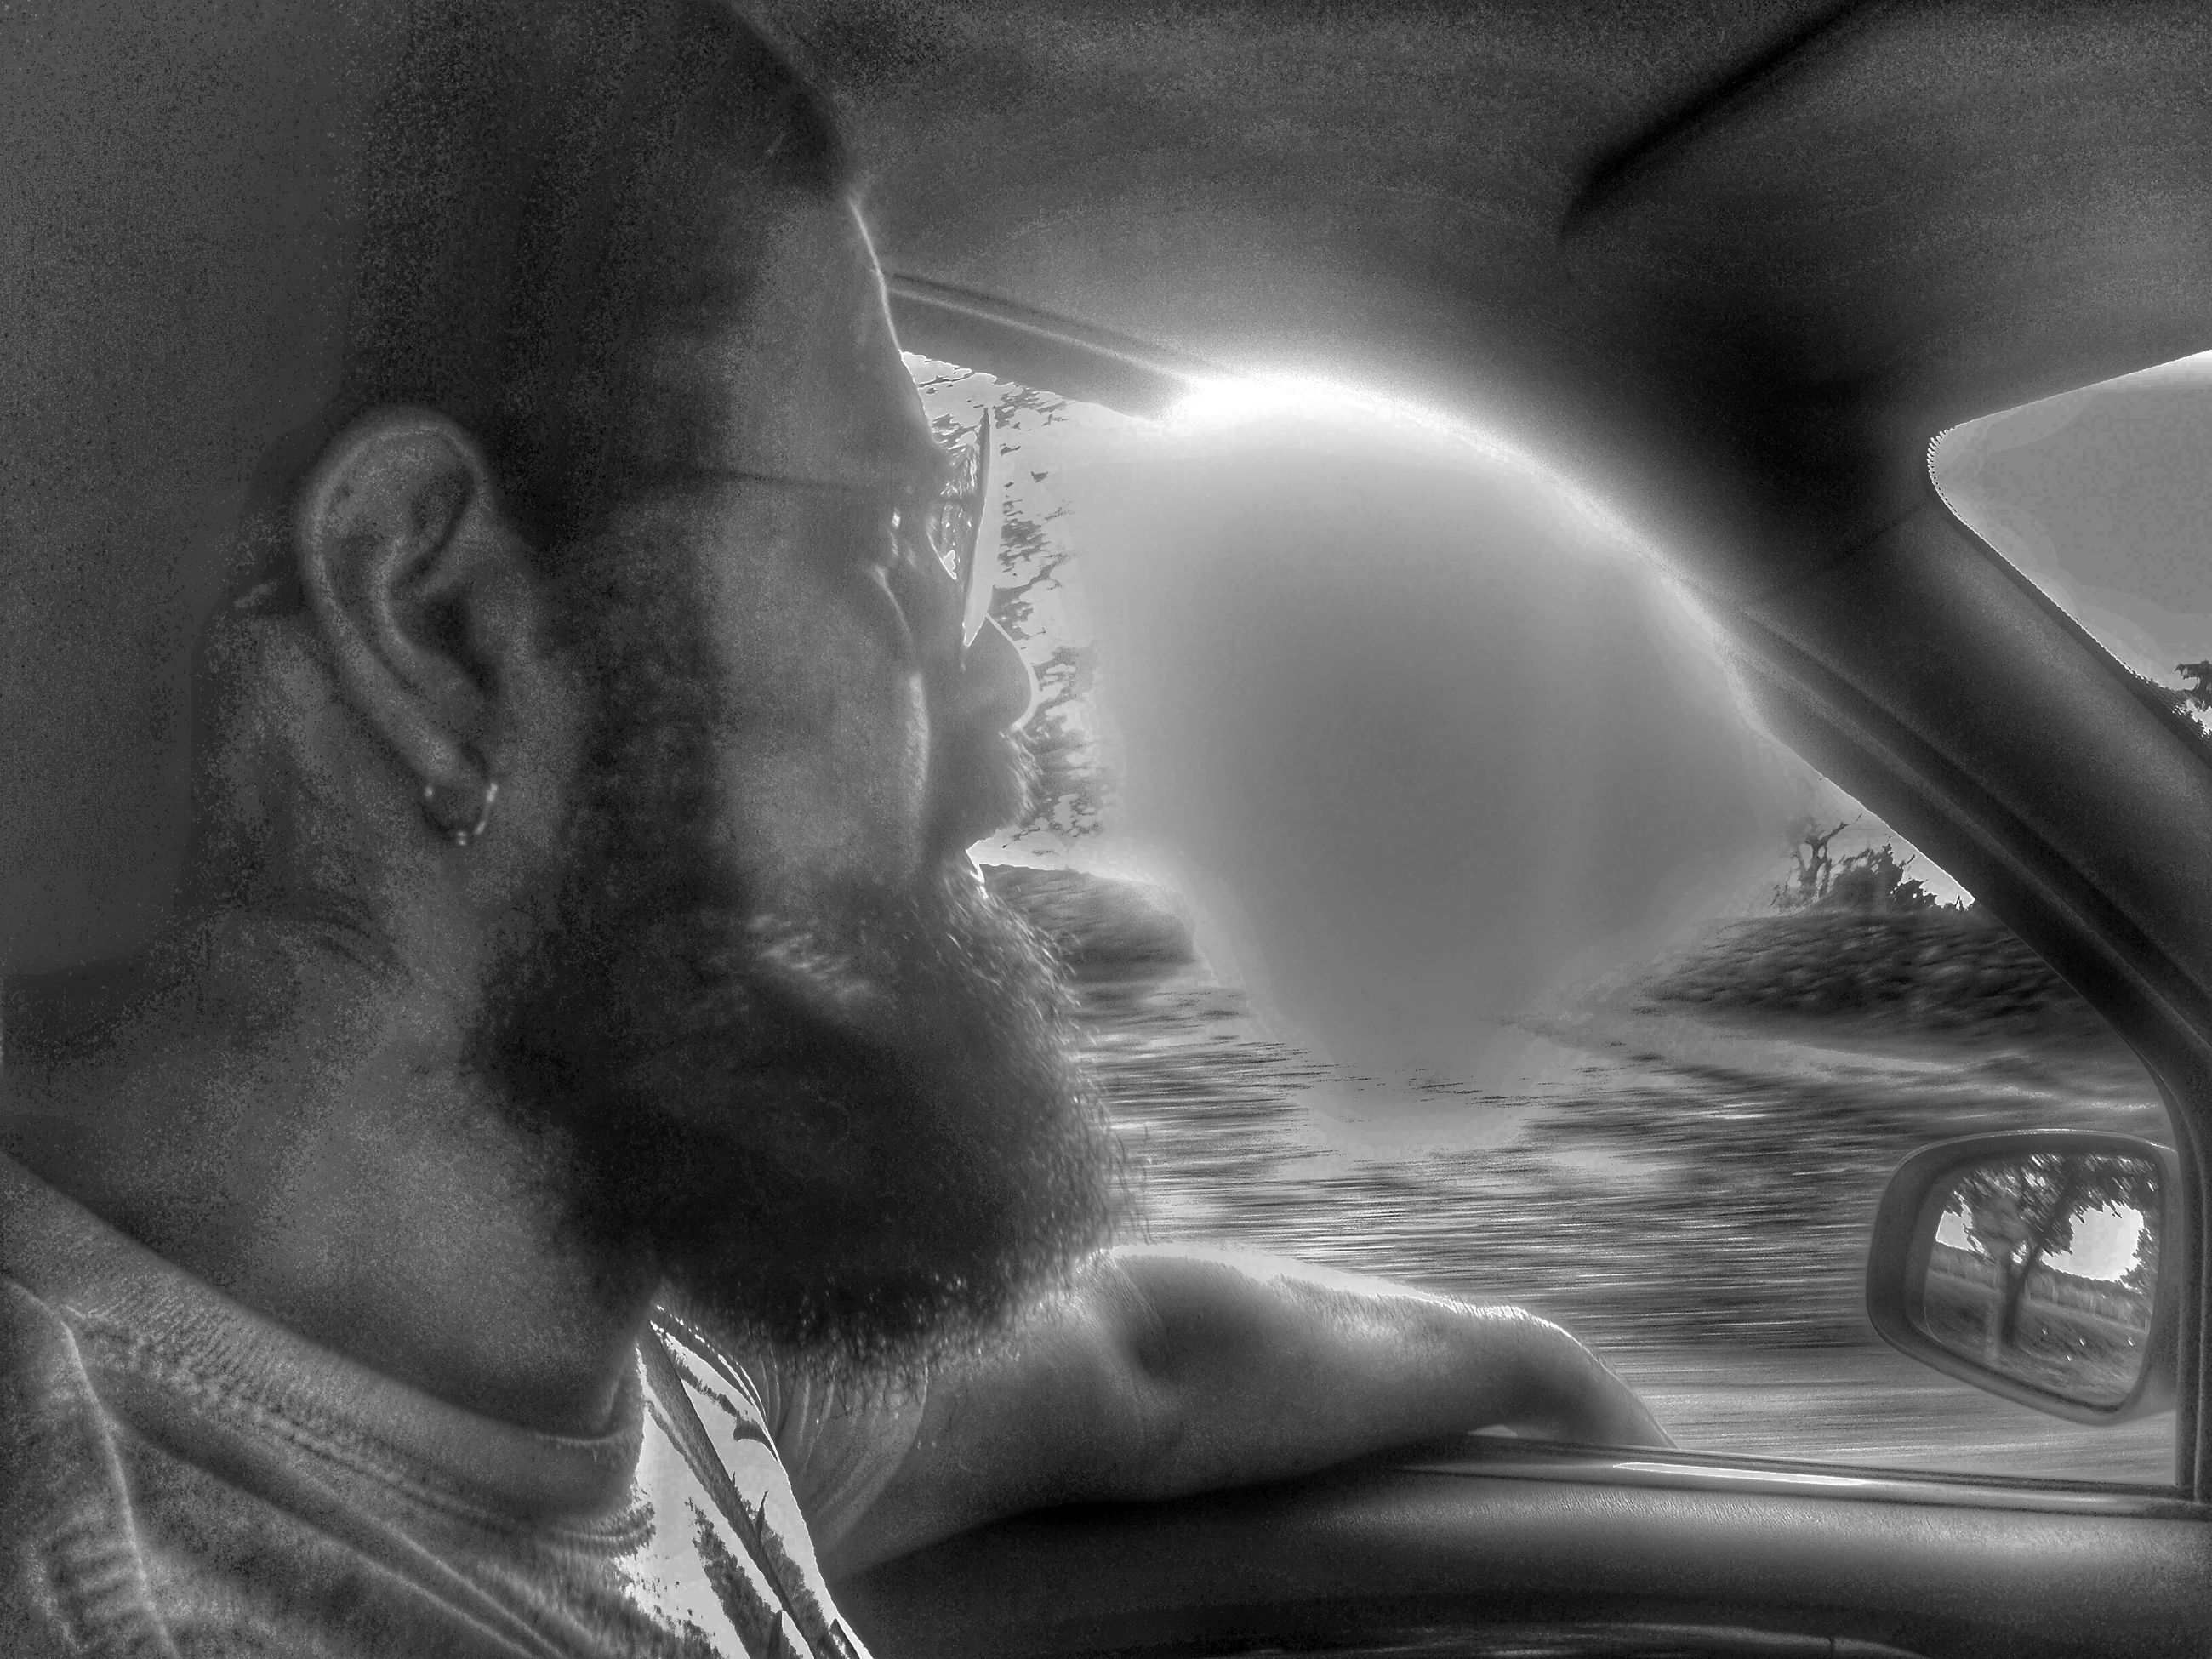 lifestyles, leisure activity, water, young adult, indoors, young women, headshot, window, men, person, vehicle interior, sunlight, sea, transparent, day, motion